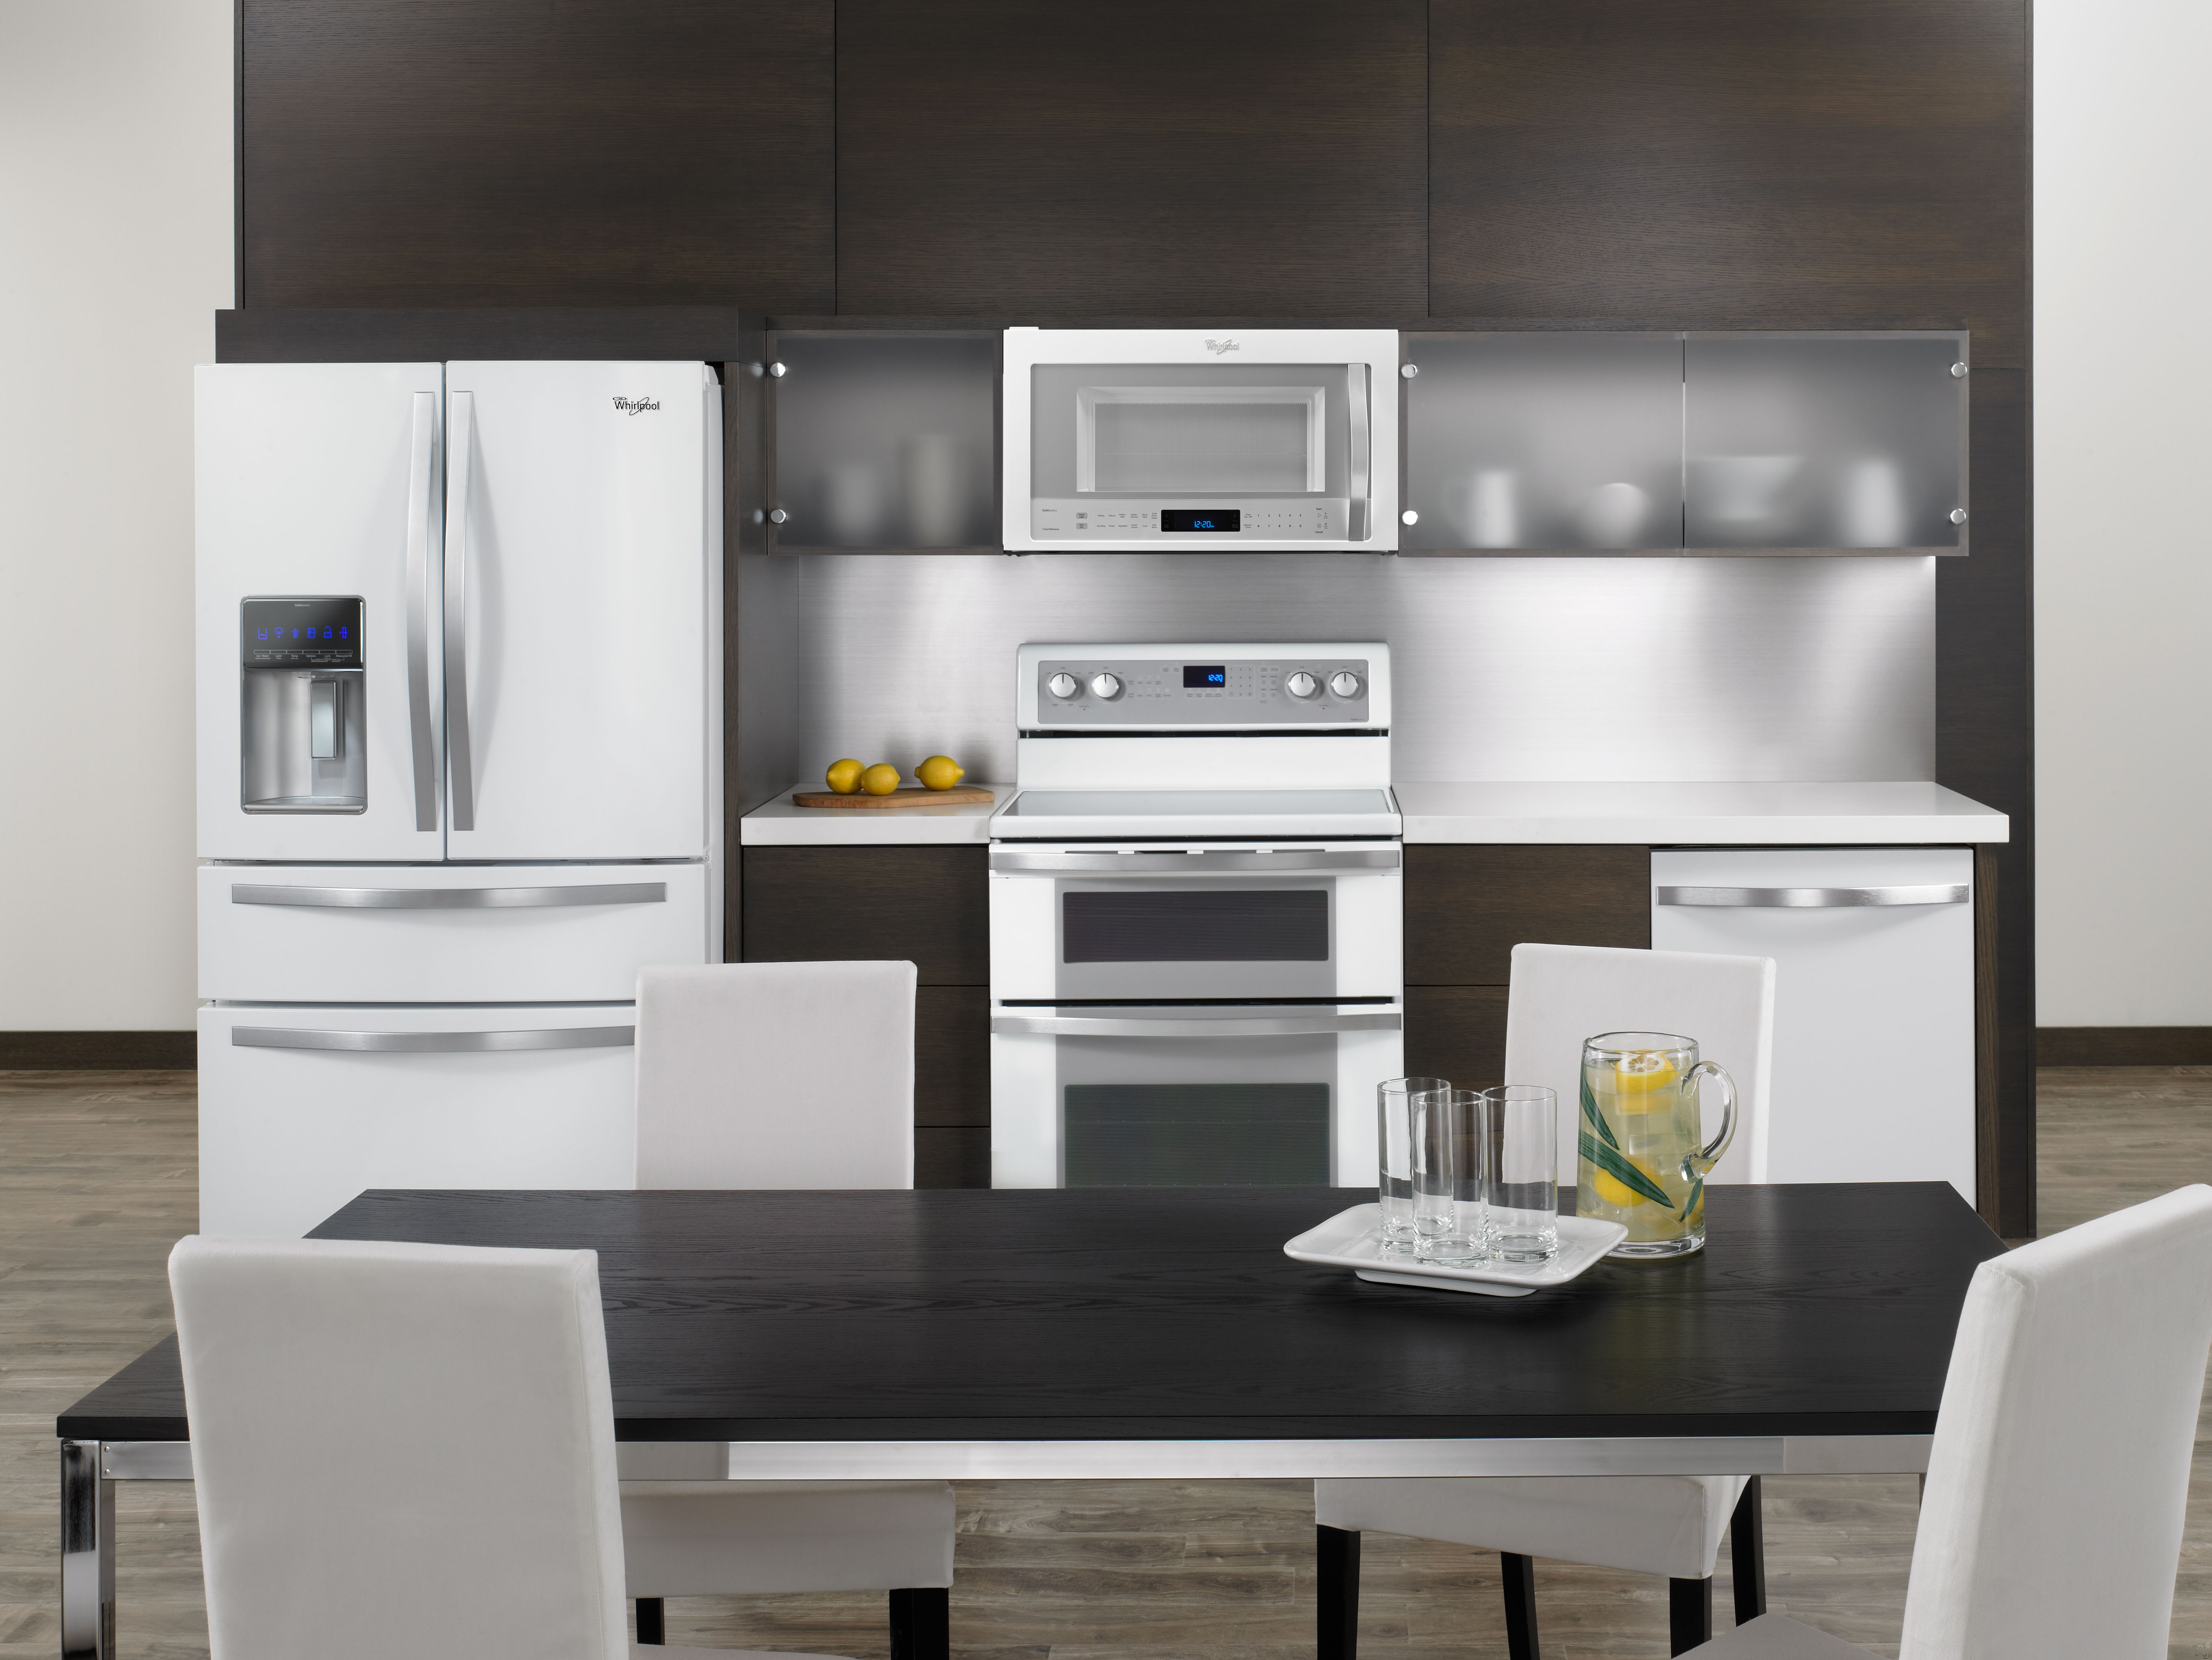 Whirlpool Wmh73521cs 2 1 Cu Ft Over The Range Microwave Oven With 400 Cfm Ventilation 1 100